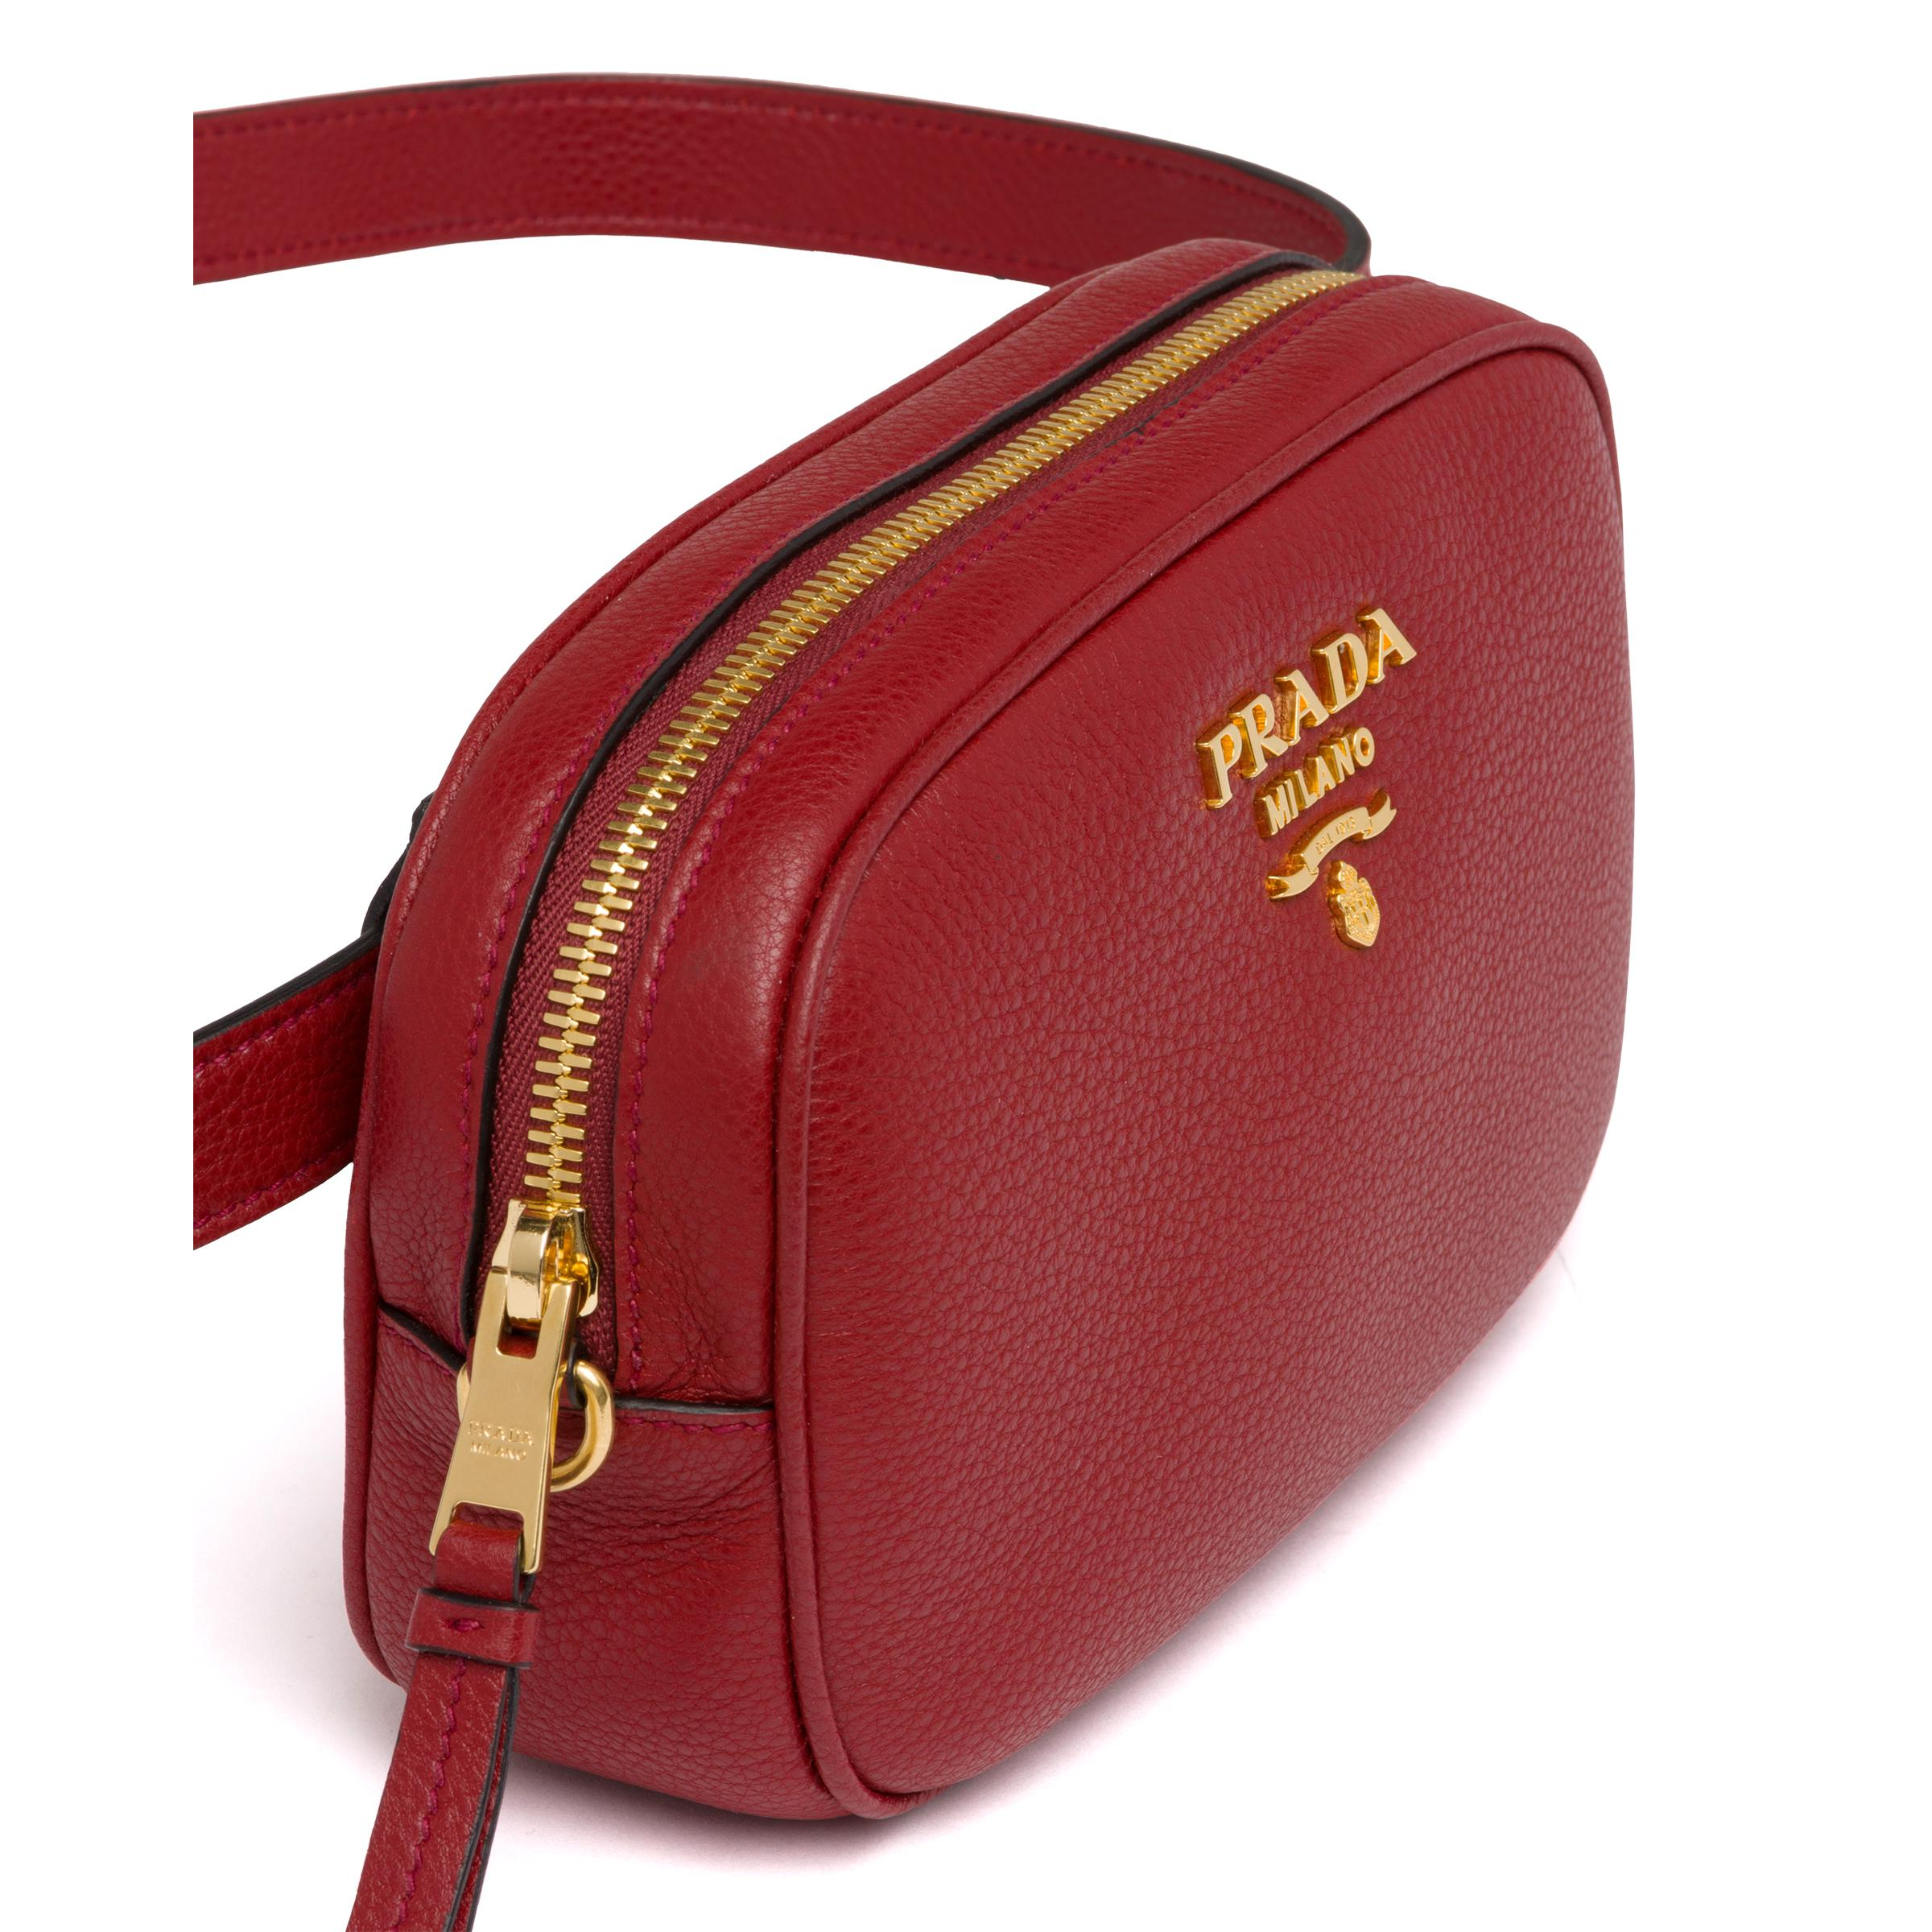 Leather Belt Bag Women Ruby Red 5